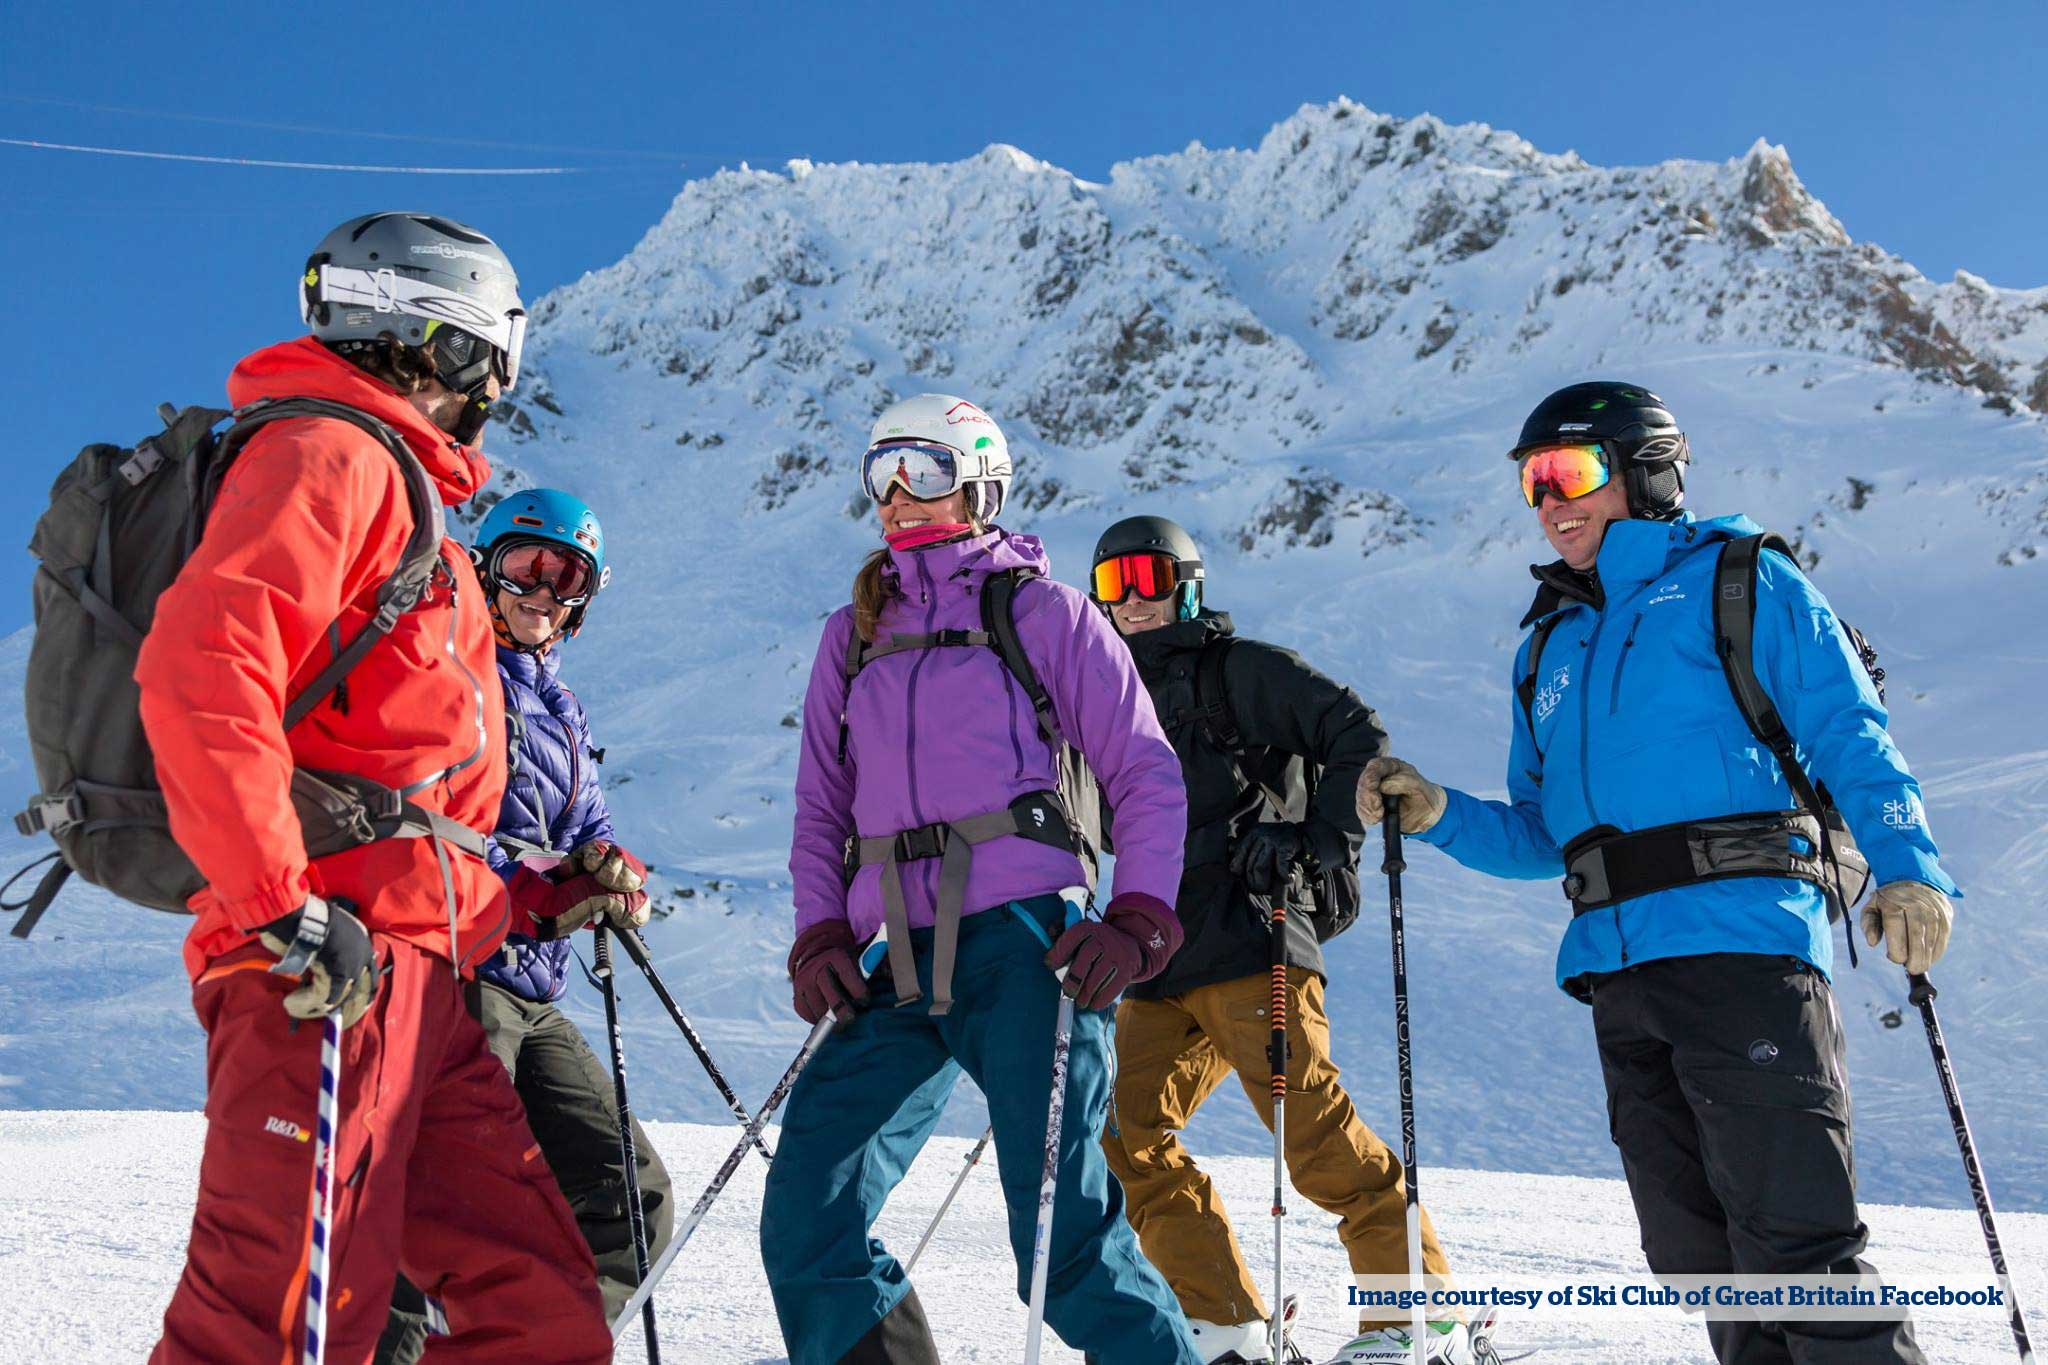 Skiers taking a break on the Slopes